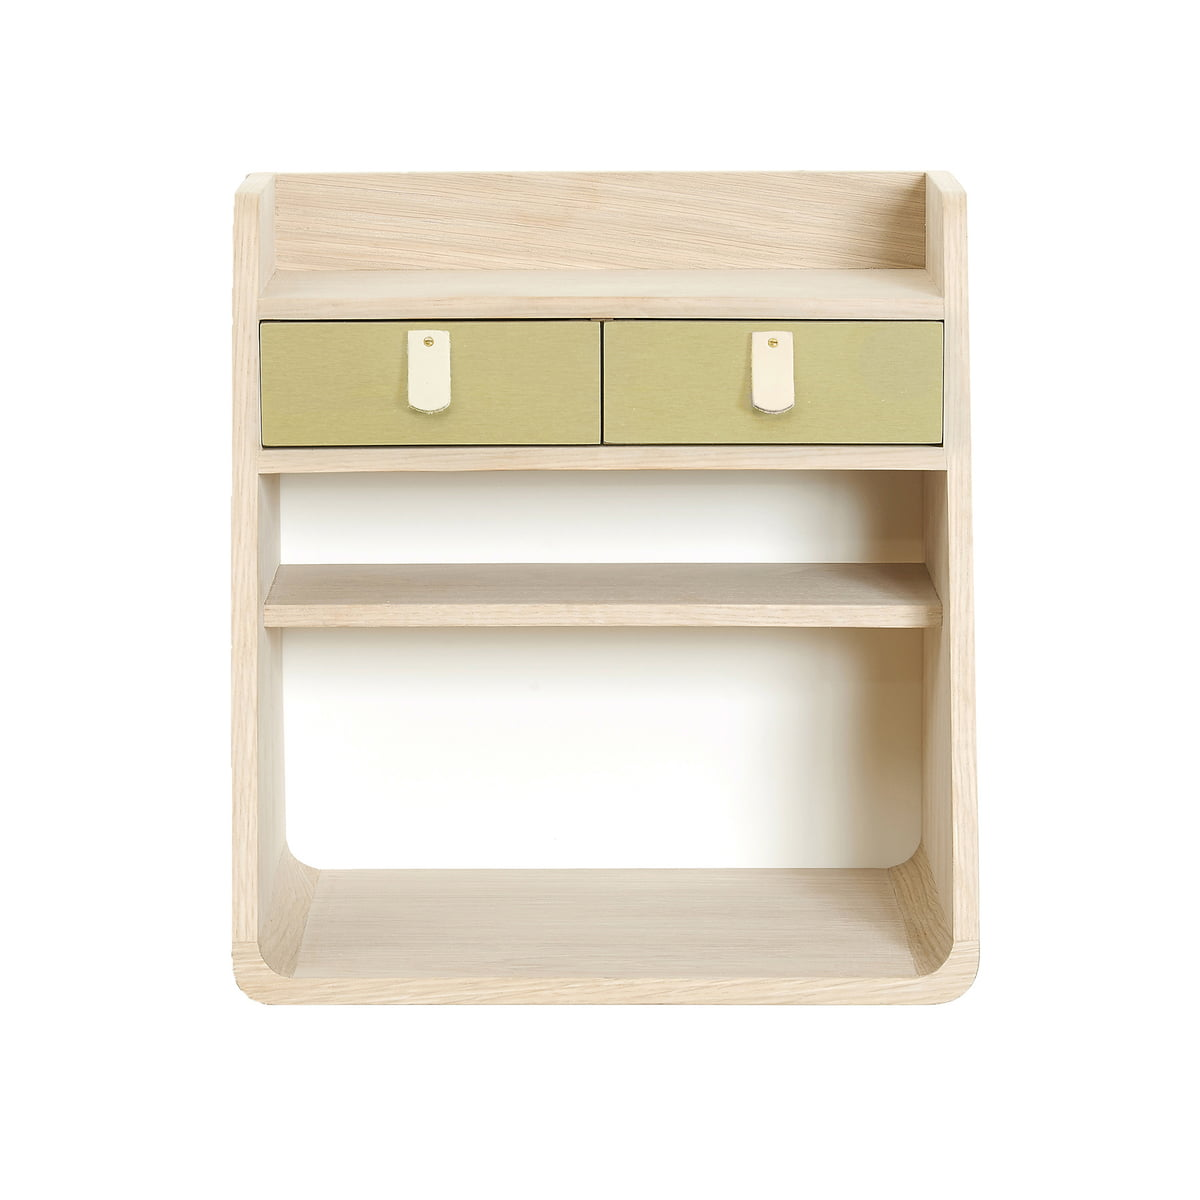 Buy Suzon wall-mounted Storage by Hartô in the shop